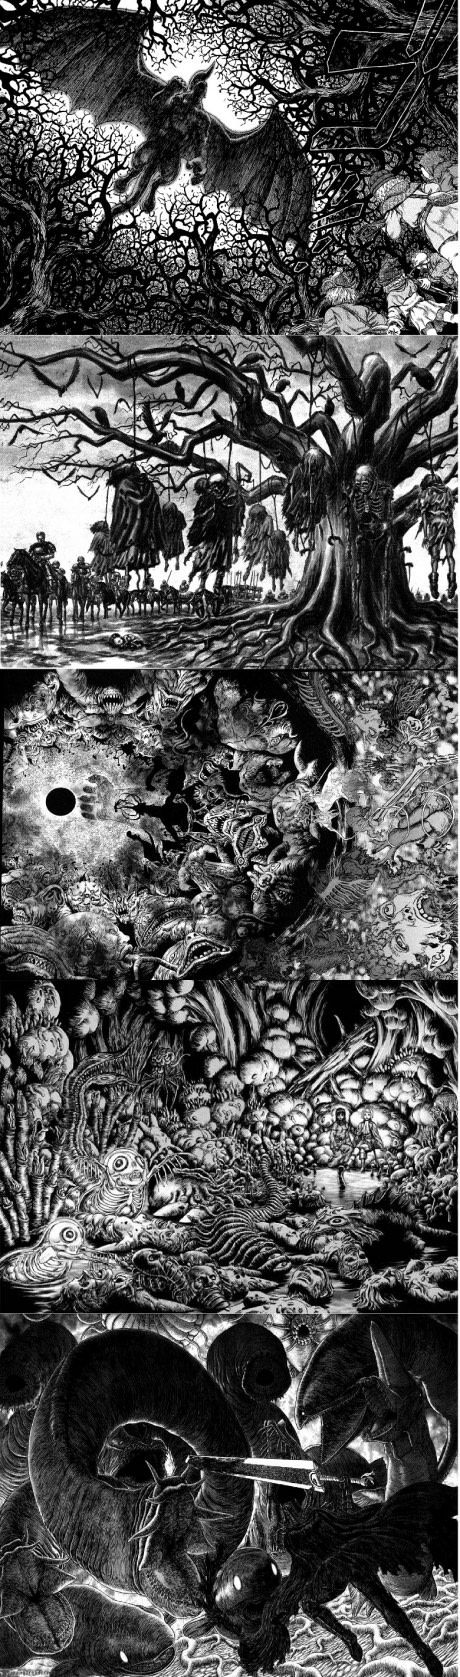 Artwork from Kentaro Miura for Berserk. Simply beautiful.